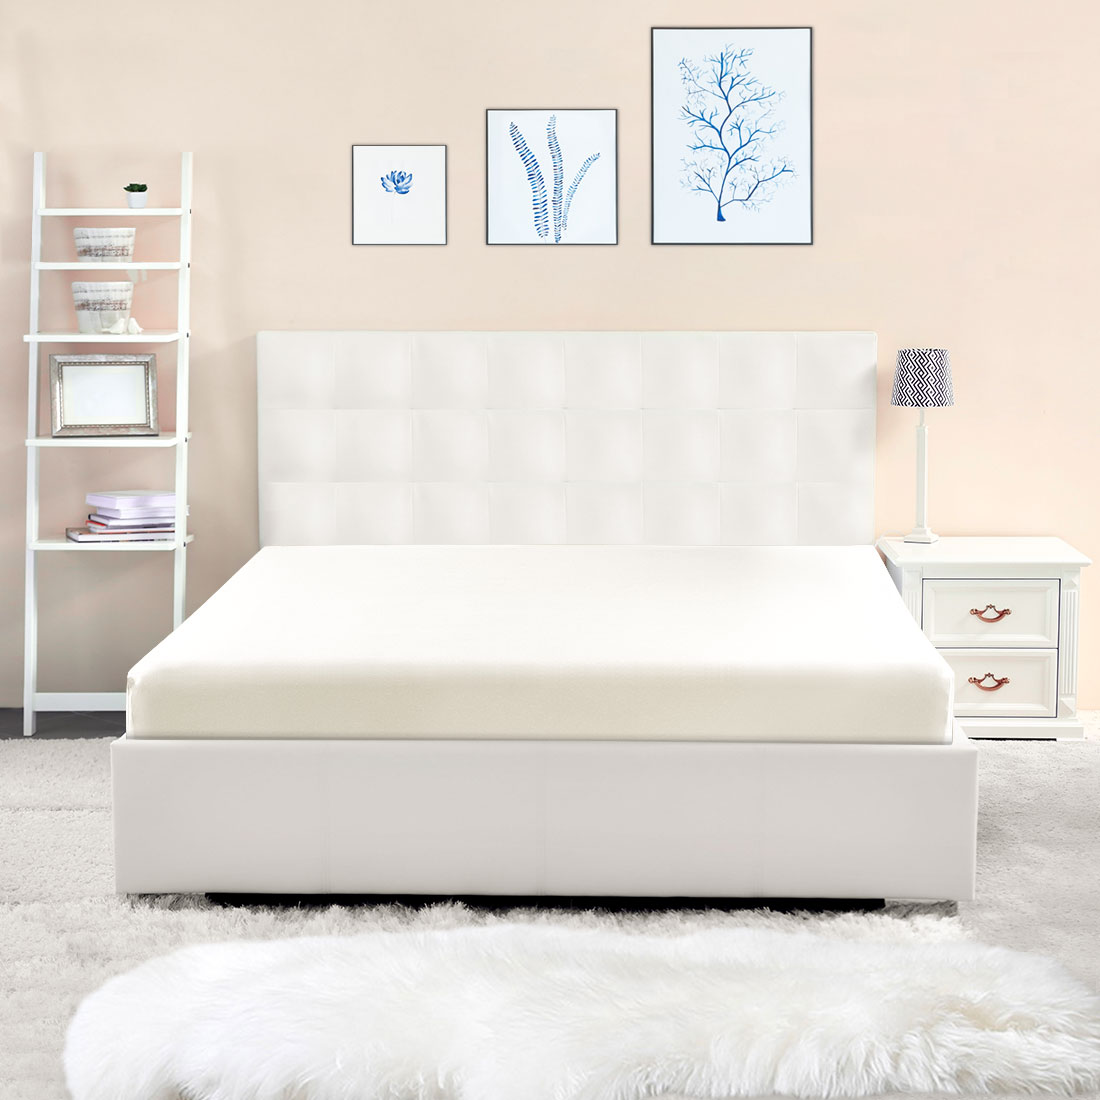 Washed Cotton Fitted Sheet with Large Elastic Pocket Bed Sheets Cream King